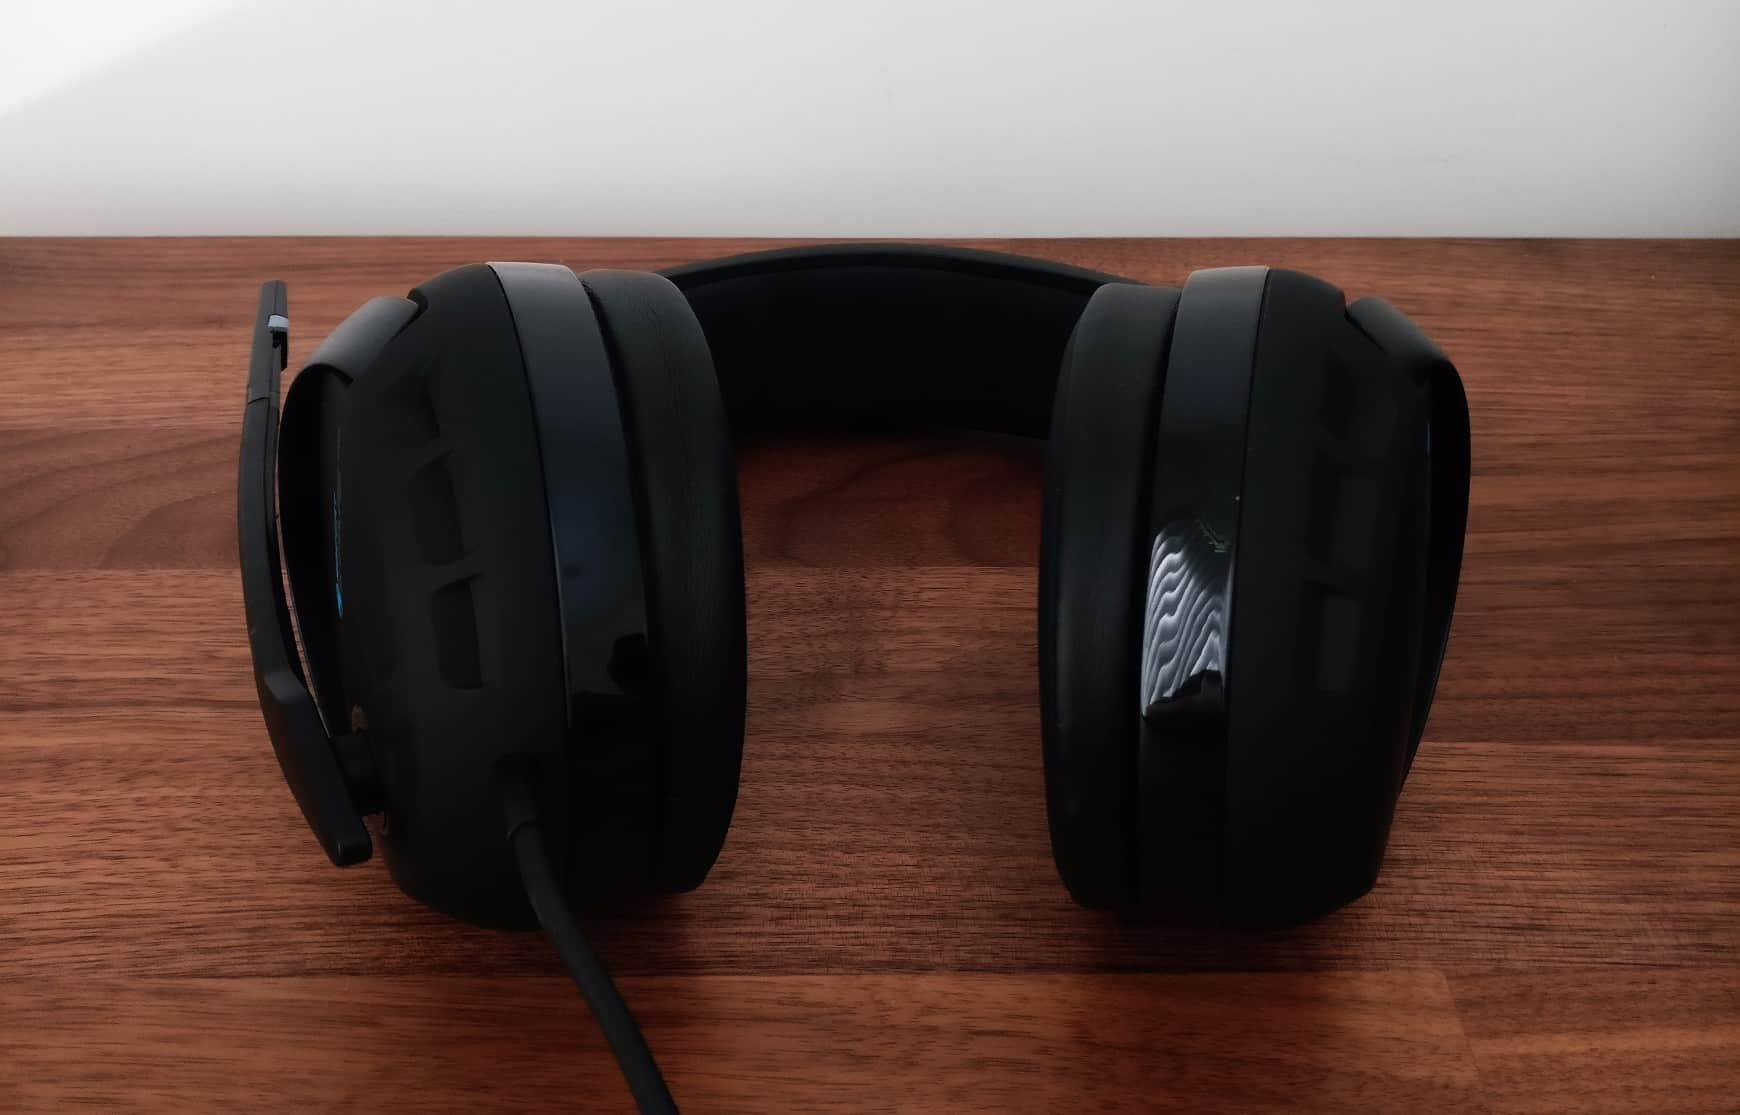 roccat-kave-photos10 Roccat Kave XTD 5.1 Digital Gaming Headset Review